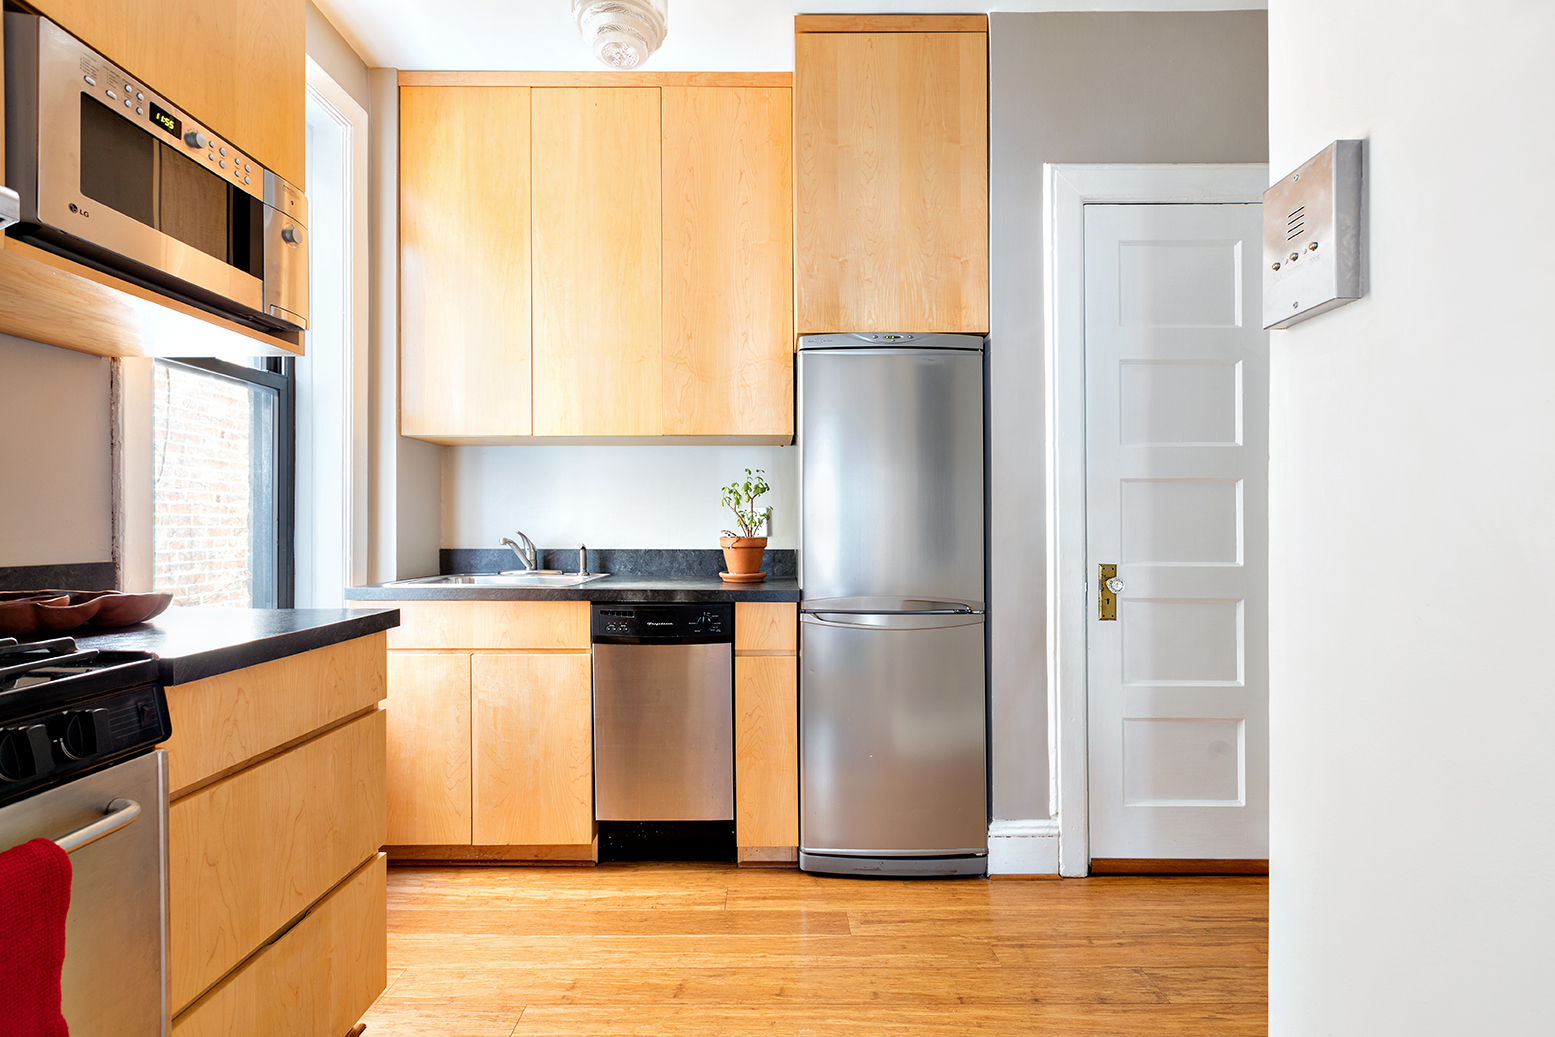 368 State Street, cool listings, boerum hill, brooklyn co-op for sale, brooklyn